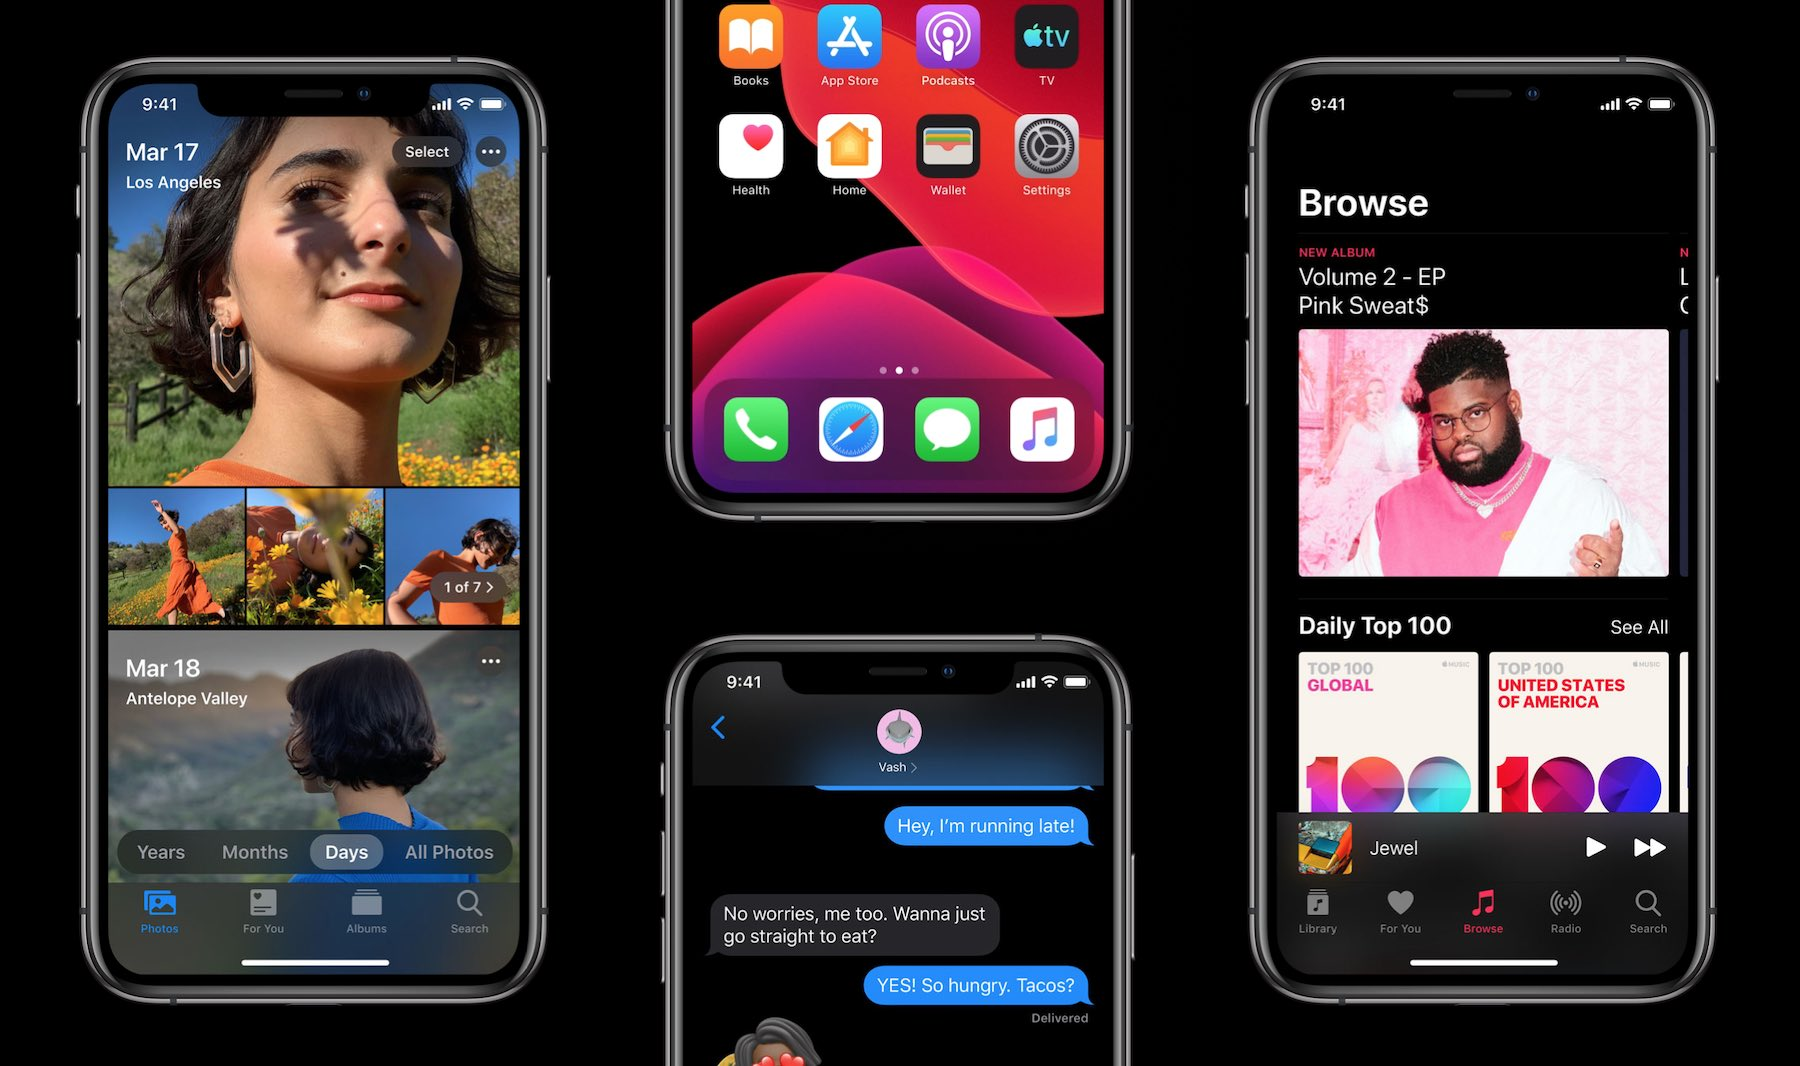 Ab 16. September – iOS 14, iPadOS 14, tvOS 14 und watchOS 7